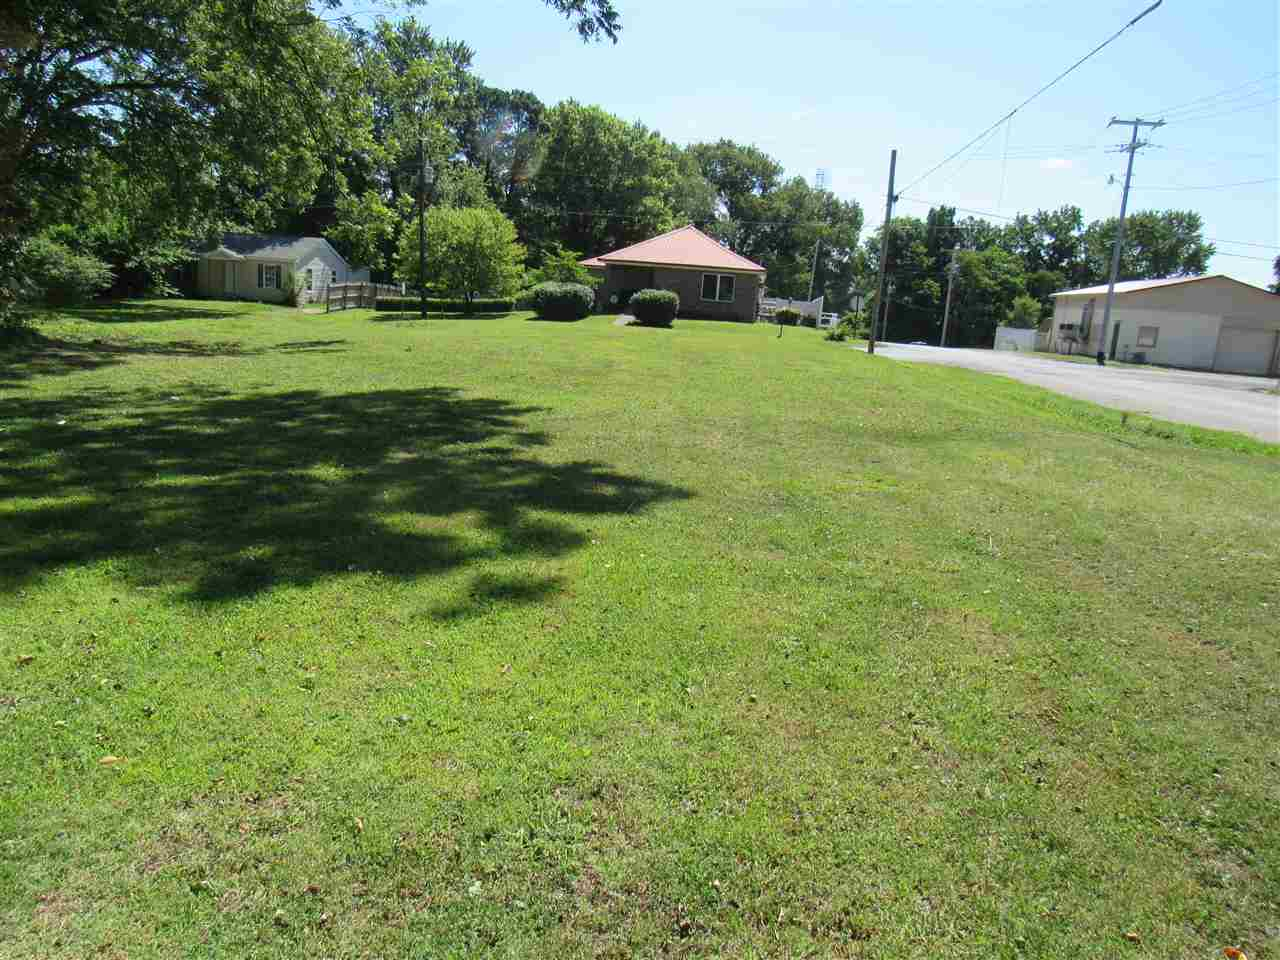 203 Reynolds Ave, Dyersburg, Tennessee 38024, ,Lots/land,For Sale,203 Reynolds Ave,188740